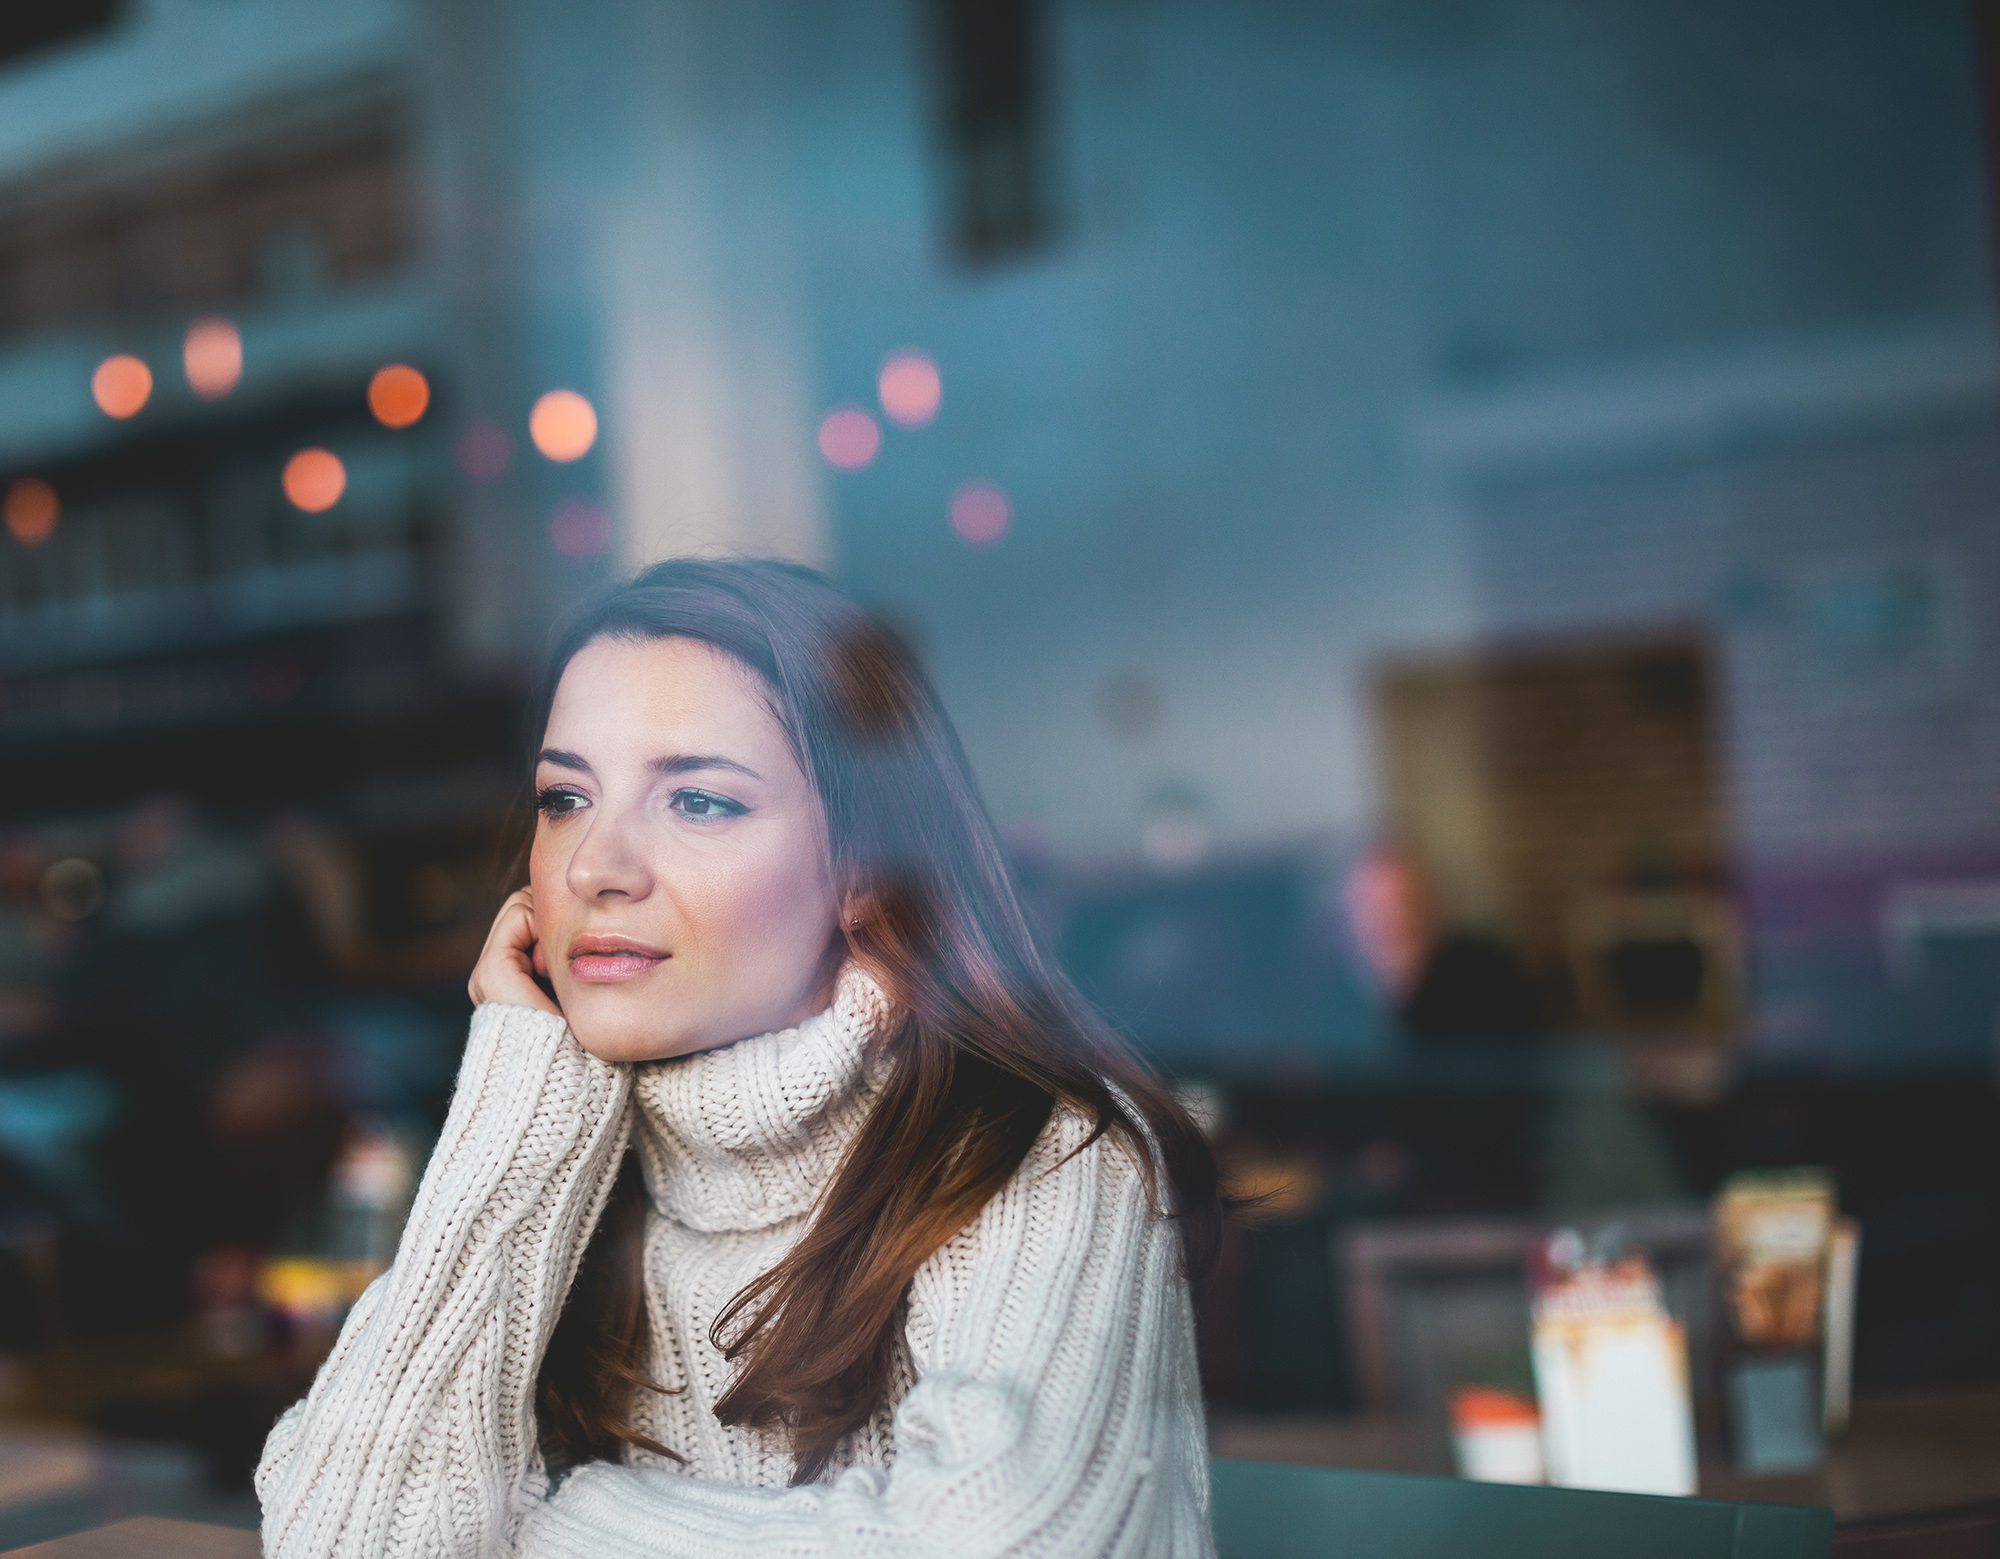 Lonely girl in cafe thinking about getting therapy for depression and anxiety. Find help with the best counselors in Katy, Texas | Cheri Locke depression therapist katy tx is ready to work with you.